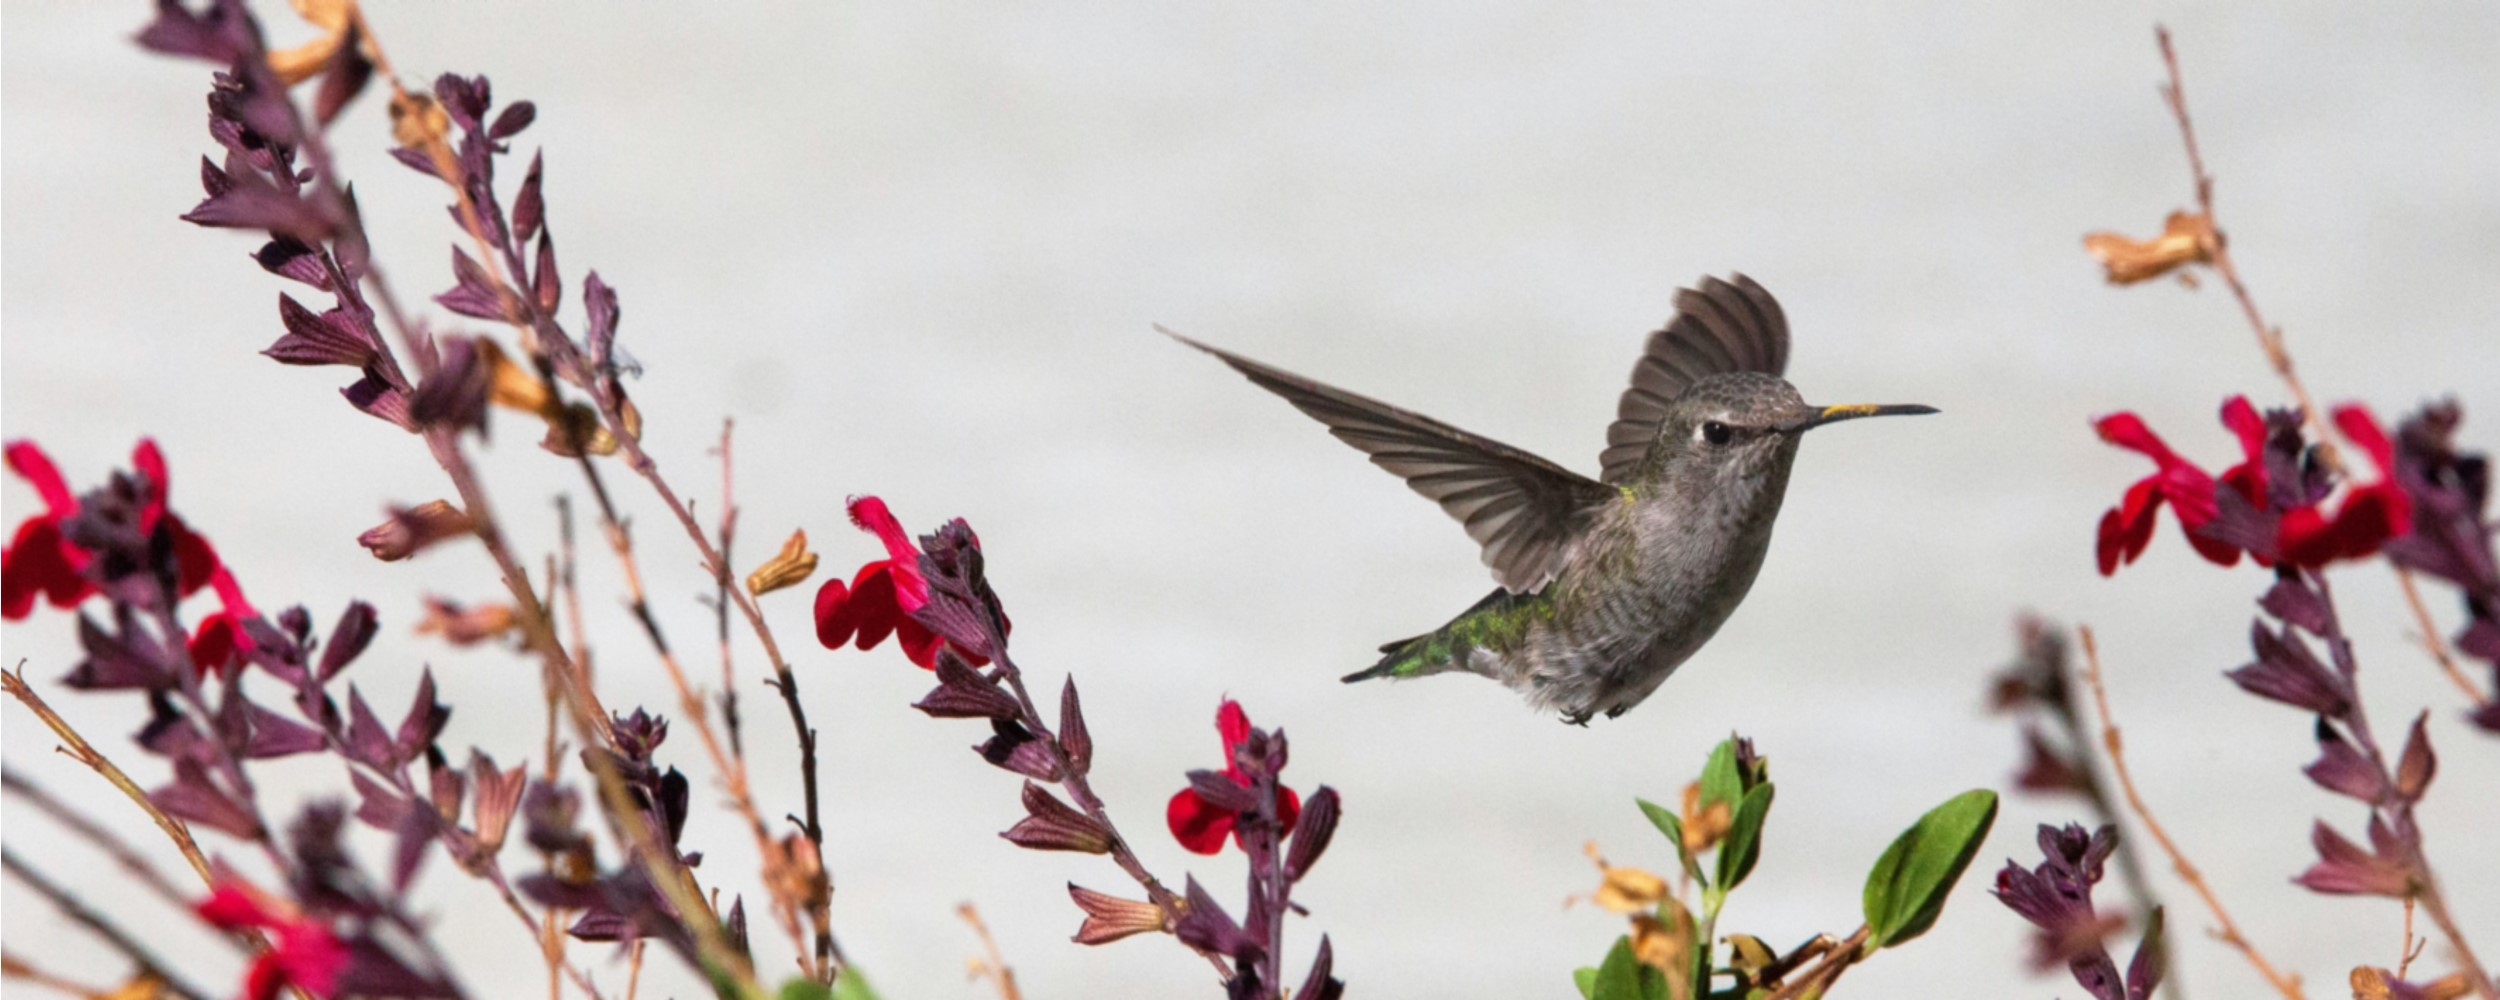 Home - Hummingbird - 2500x1000